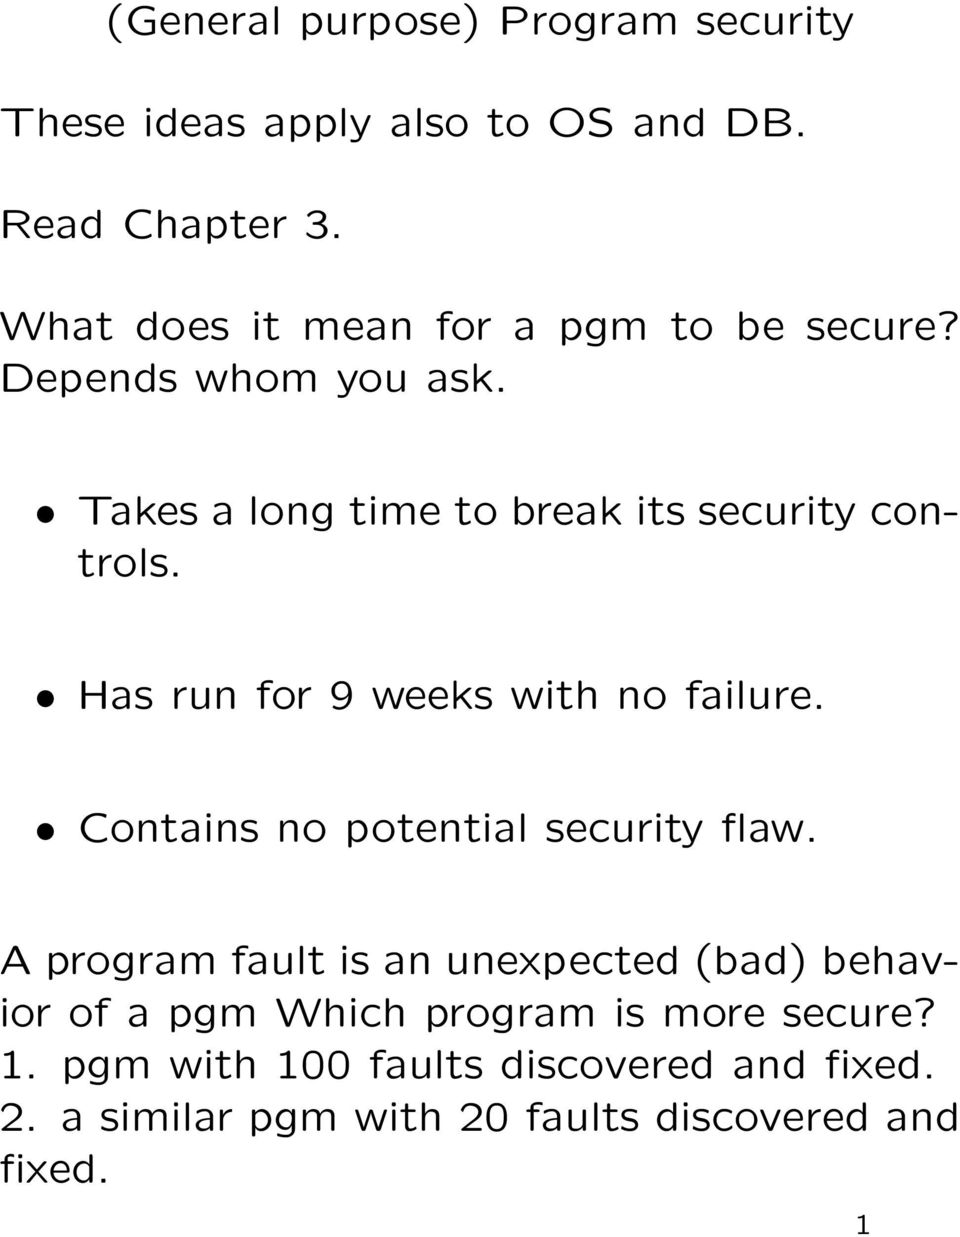 Has run for 9 weeks with no failure. Contains no potential security flaw.